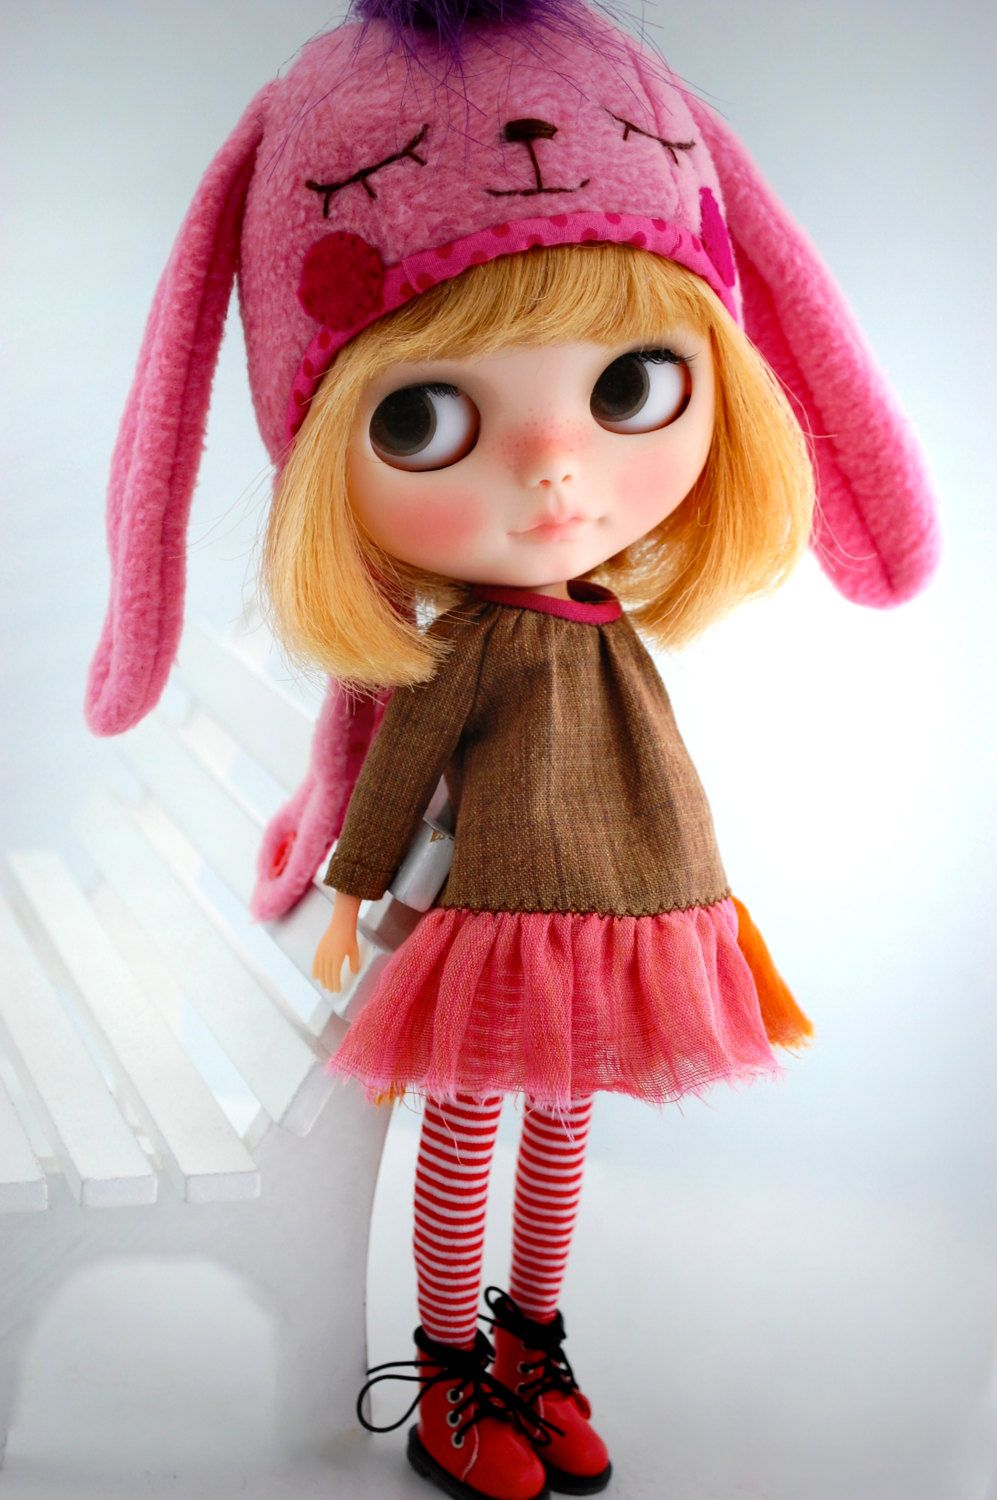 This dress is made by Miema Dollhouse and fits Blythe dolls, Dal doll, Licca, Azone and other dolls with the same body size.1/6 doll (22-25 cm body)    It includes 1 items : 1 dress    You can buy the socks also at our shop. (=^-ω-^=)    (Doll and others is not included.)    More doll clothes for Blythe, Pullip, Taeyang, Dal and Isul you can find in our official shop.  www.miema-shop.com    .................................................................................  Regis...